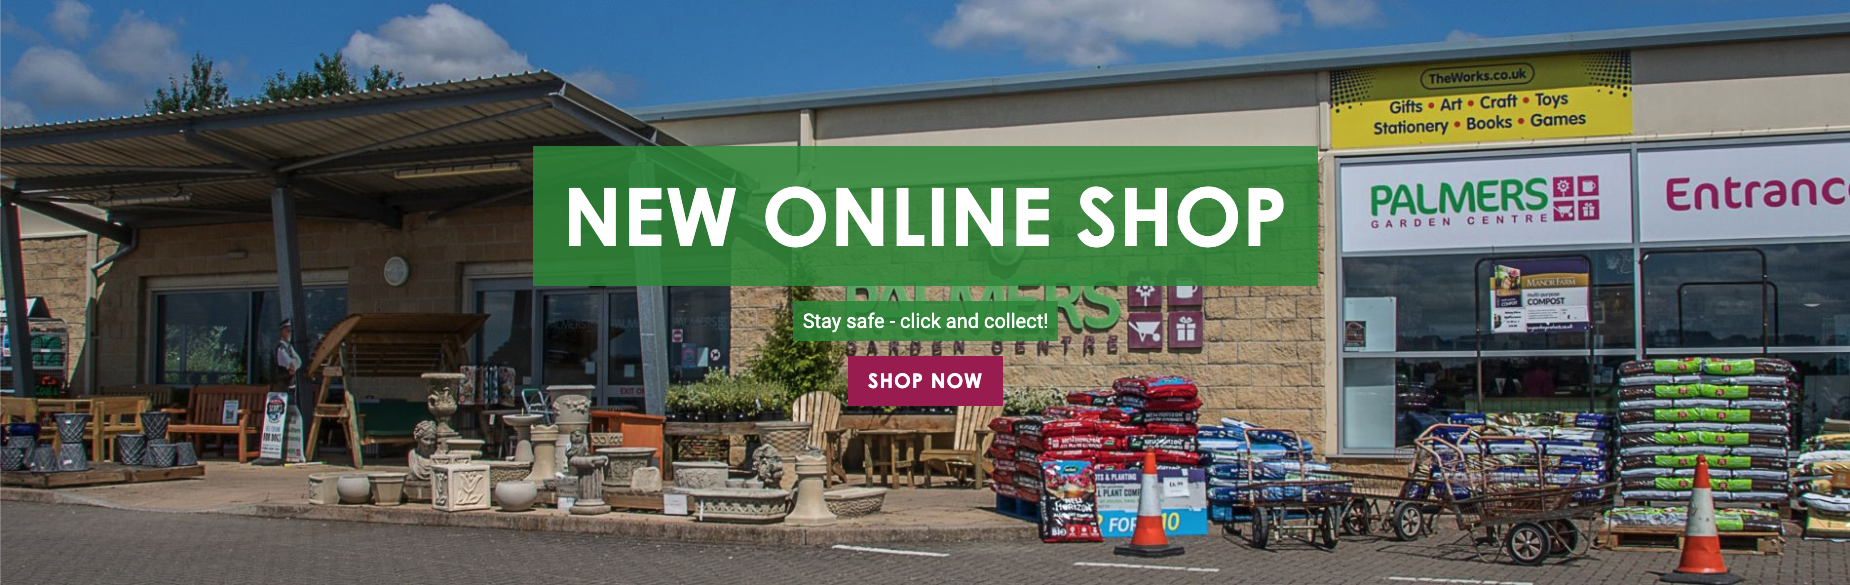 Palmers Click & Collect